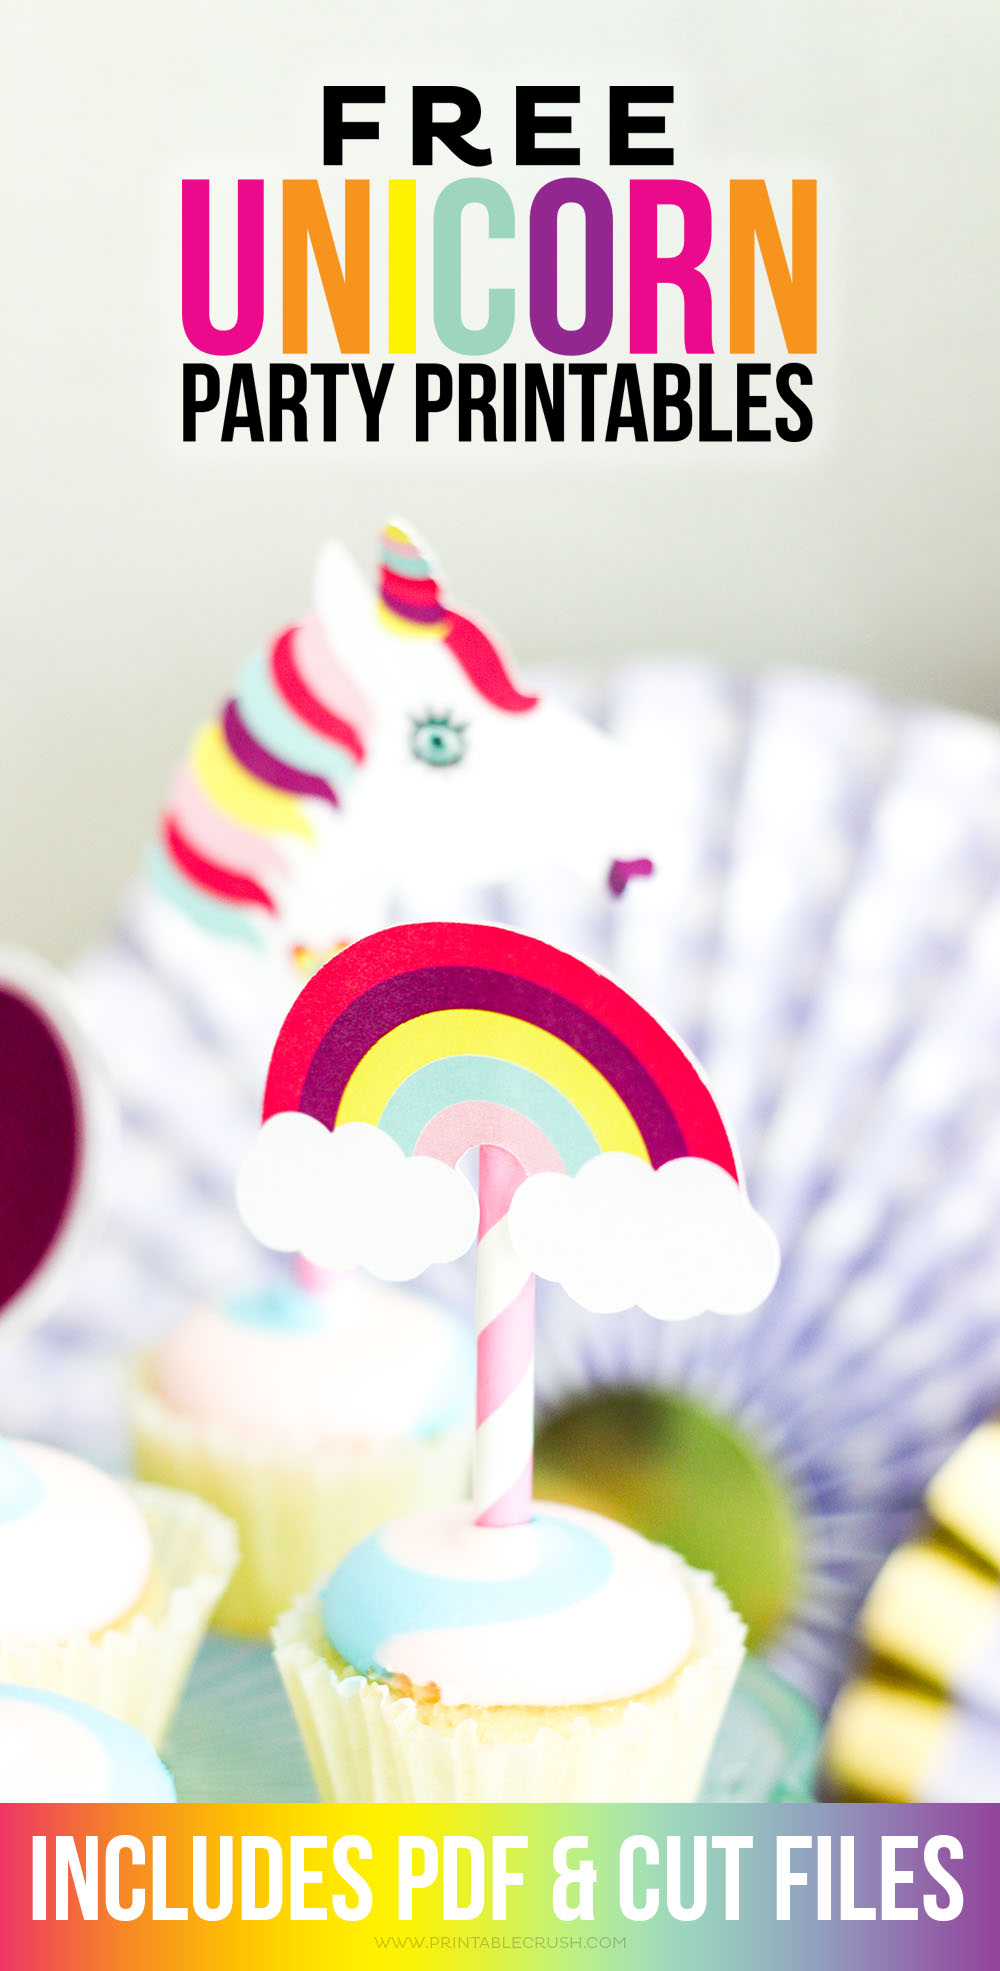 graphic regarding Unicorn Cupcake Toppers Printable named Cost-free Unicorn Occasion Printables and Slice Documents - Printable Crush